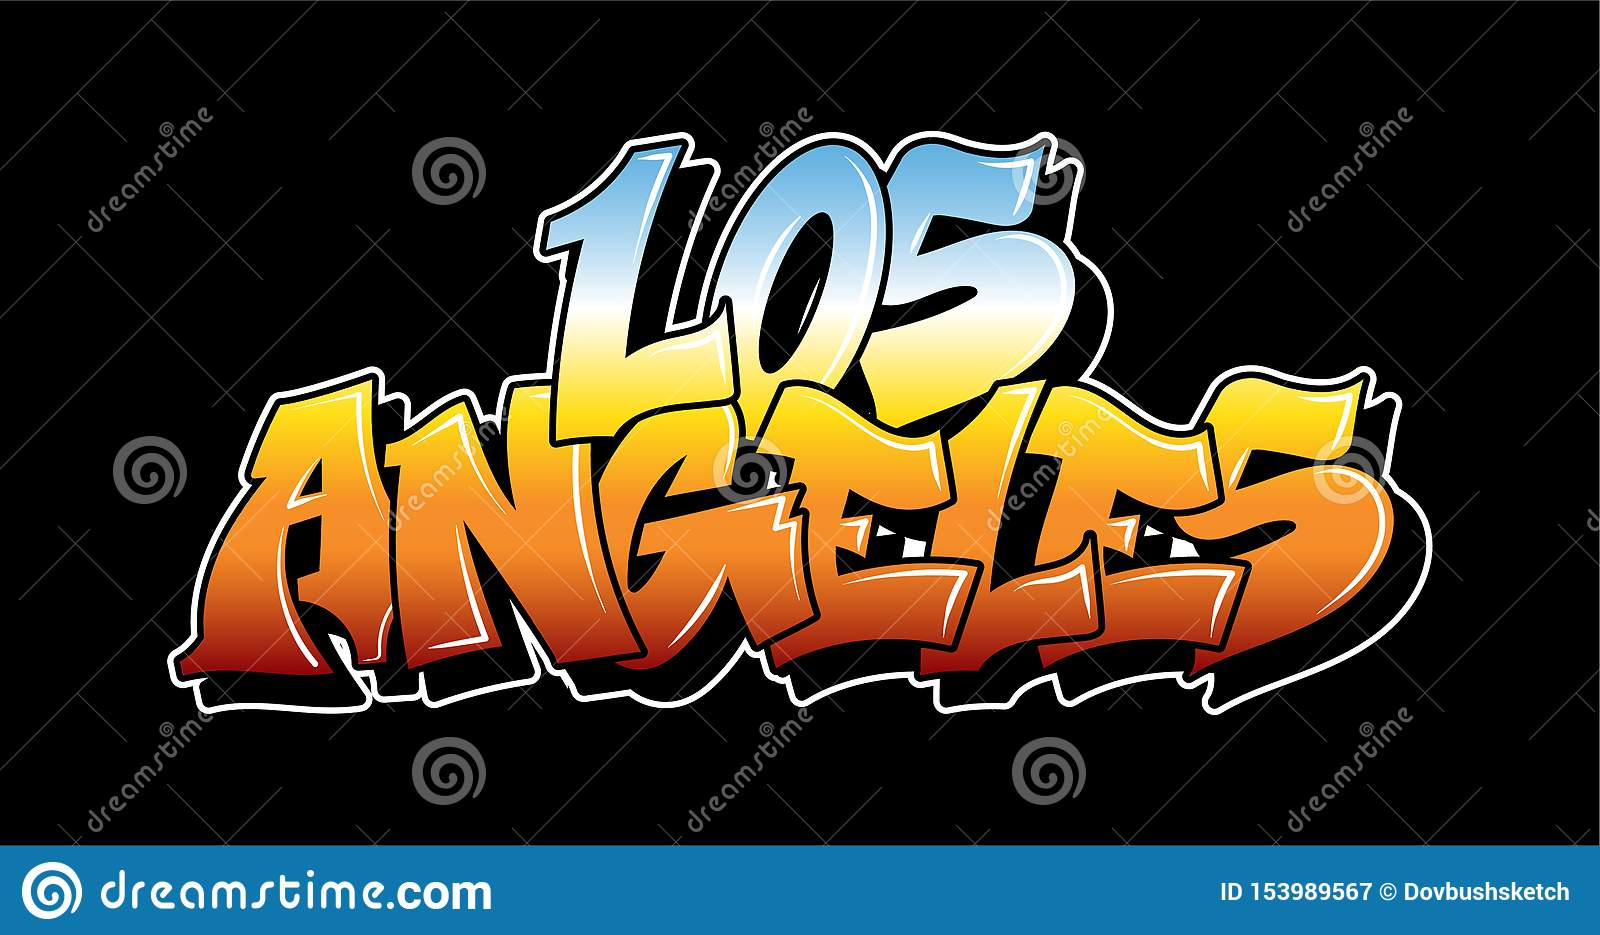 Graffiti Style Lettering Text Design Stock Vector Illustration Of Letters Angels 153989567,Clash Of Clans Builder Hall 4 Base Design